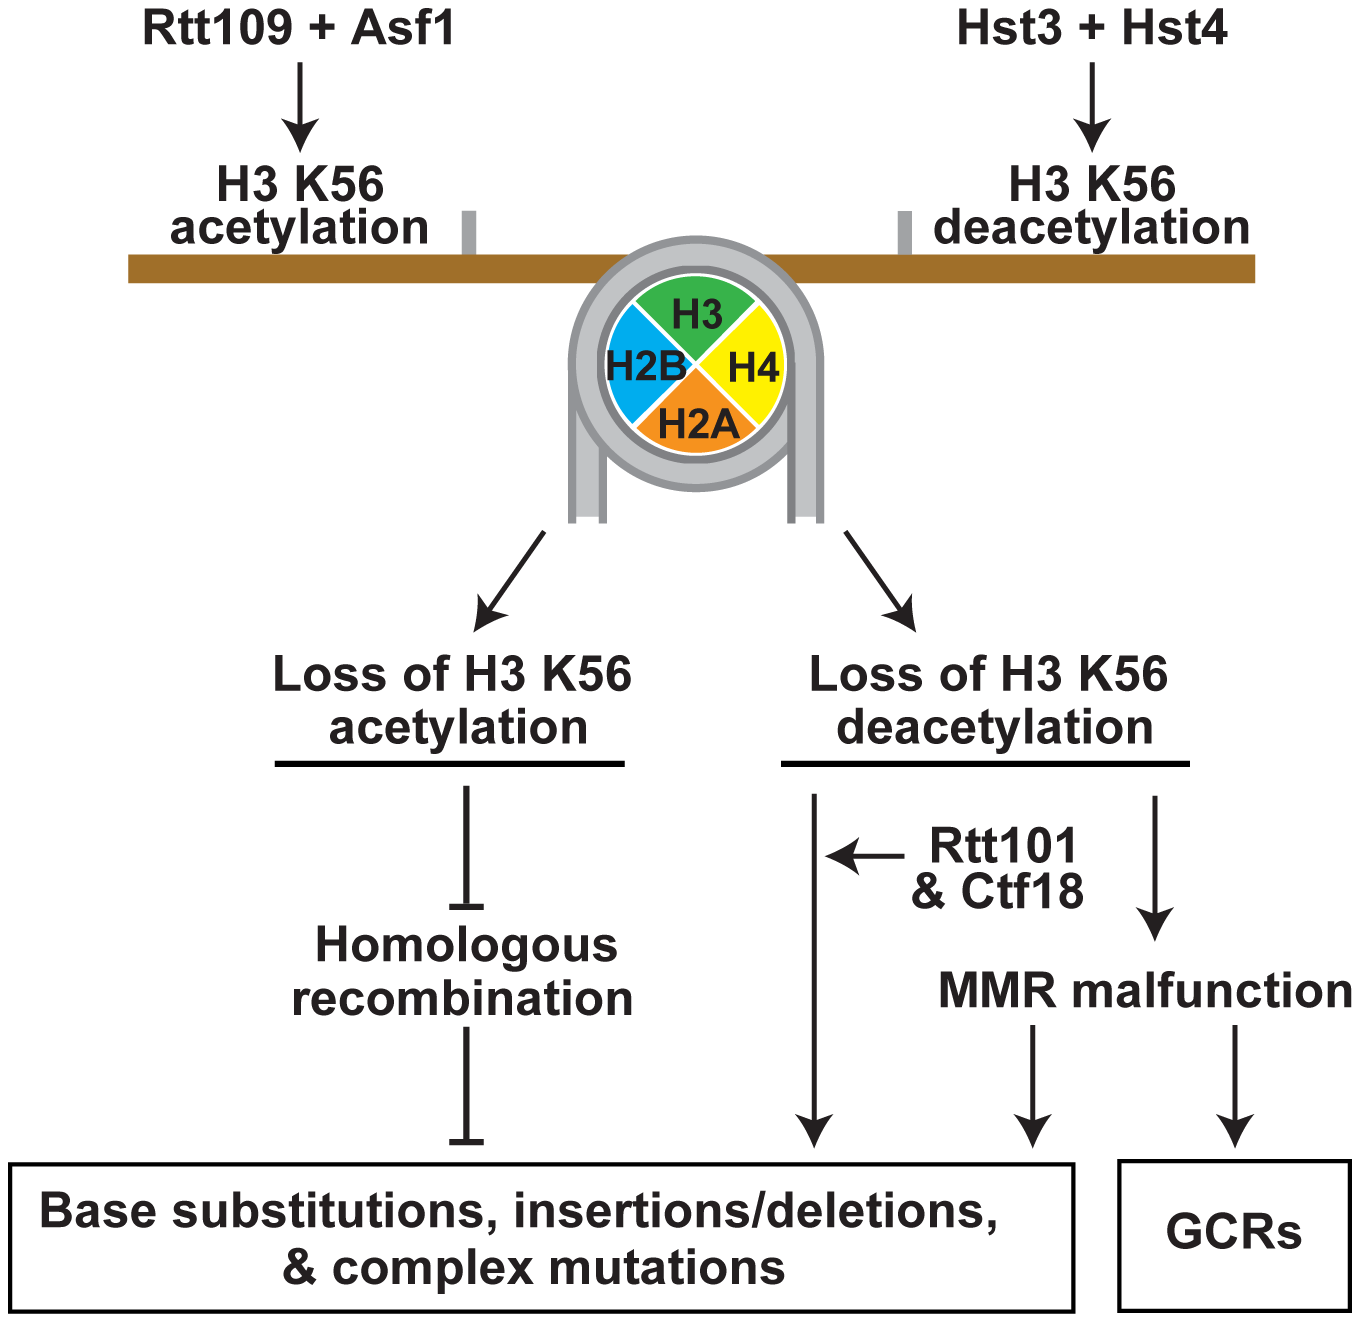 Model that summarizes the importance of the acetylation and deacetylation of H3K56 for the suppression of GCRs, base substitutions, small deletions/insertions, and complex mutations.